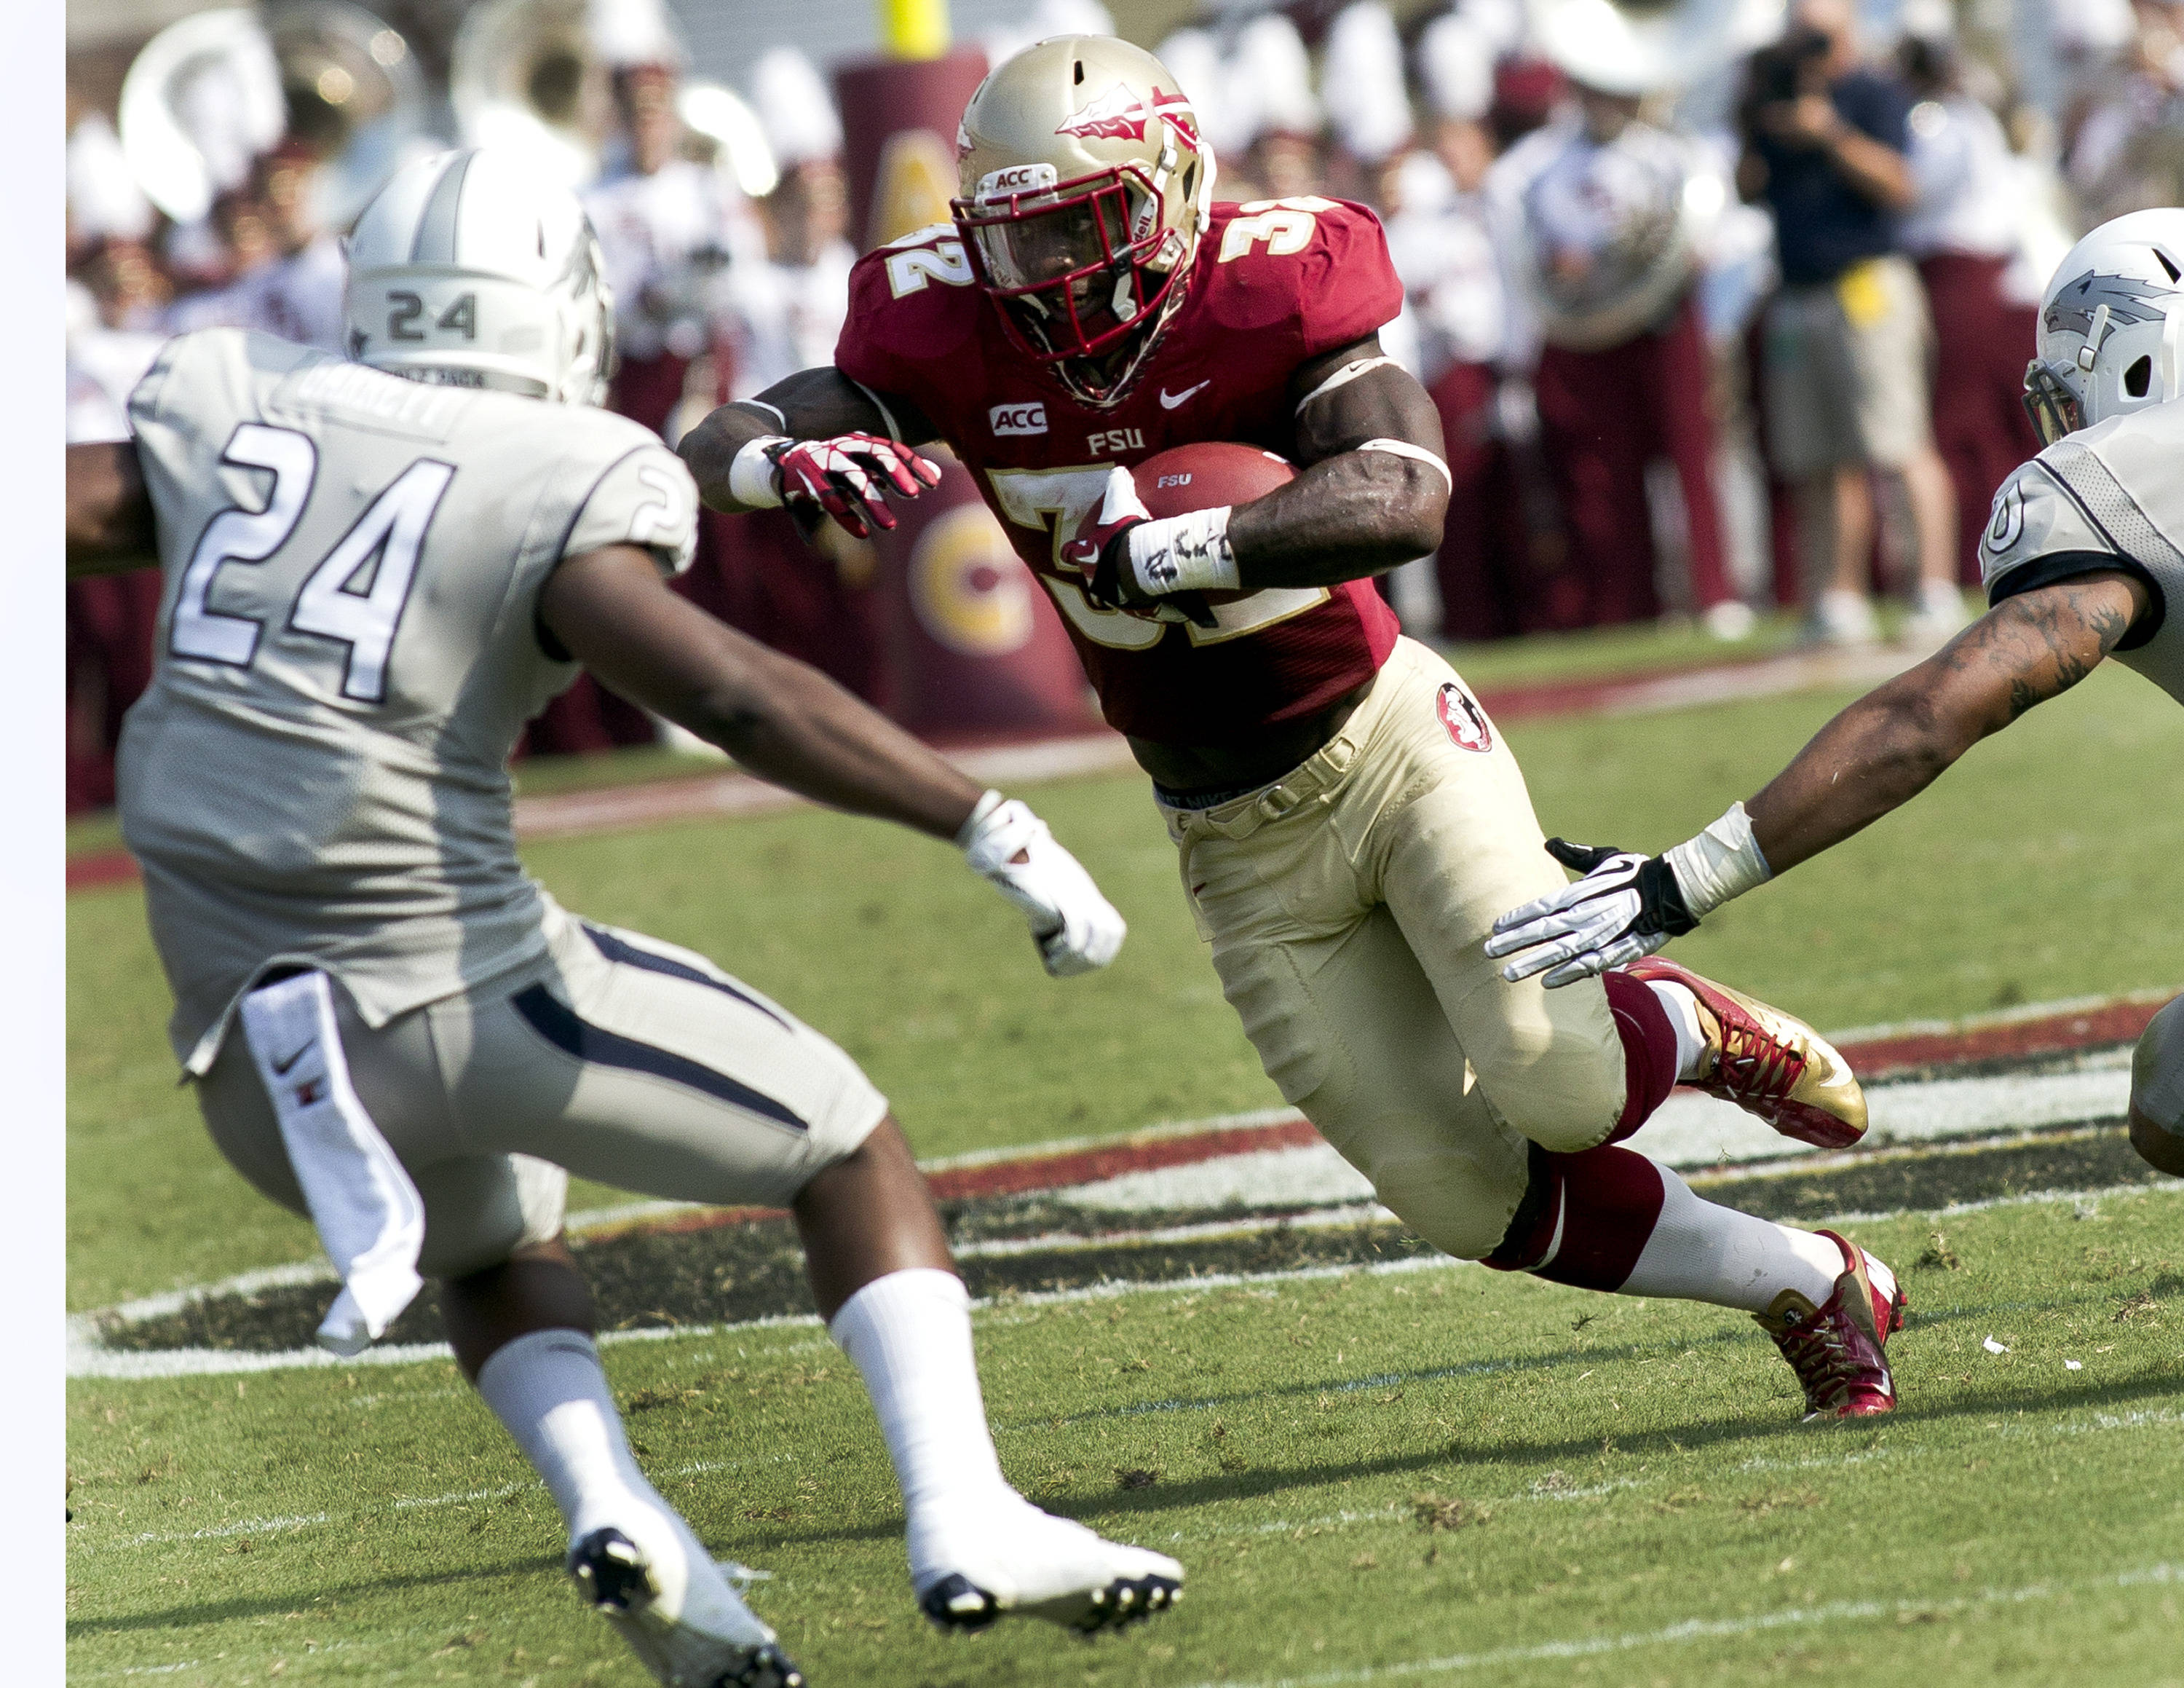 James Wilder, Jr, (32), FSU vs Nevada,  9-14-13, (Photo by Steve Musco)